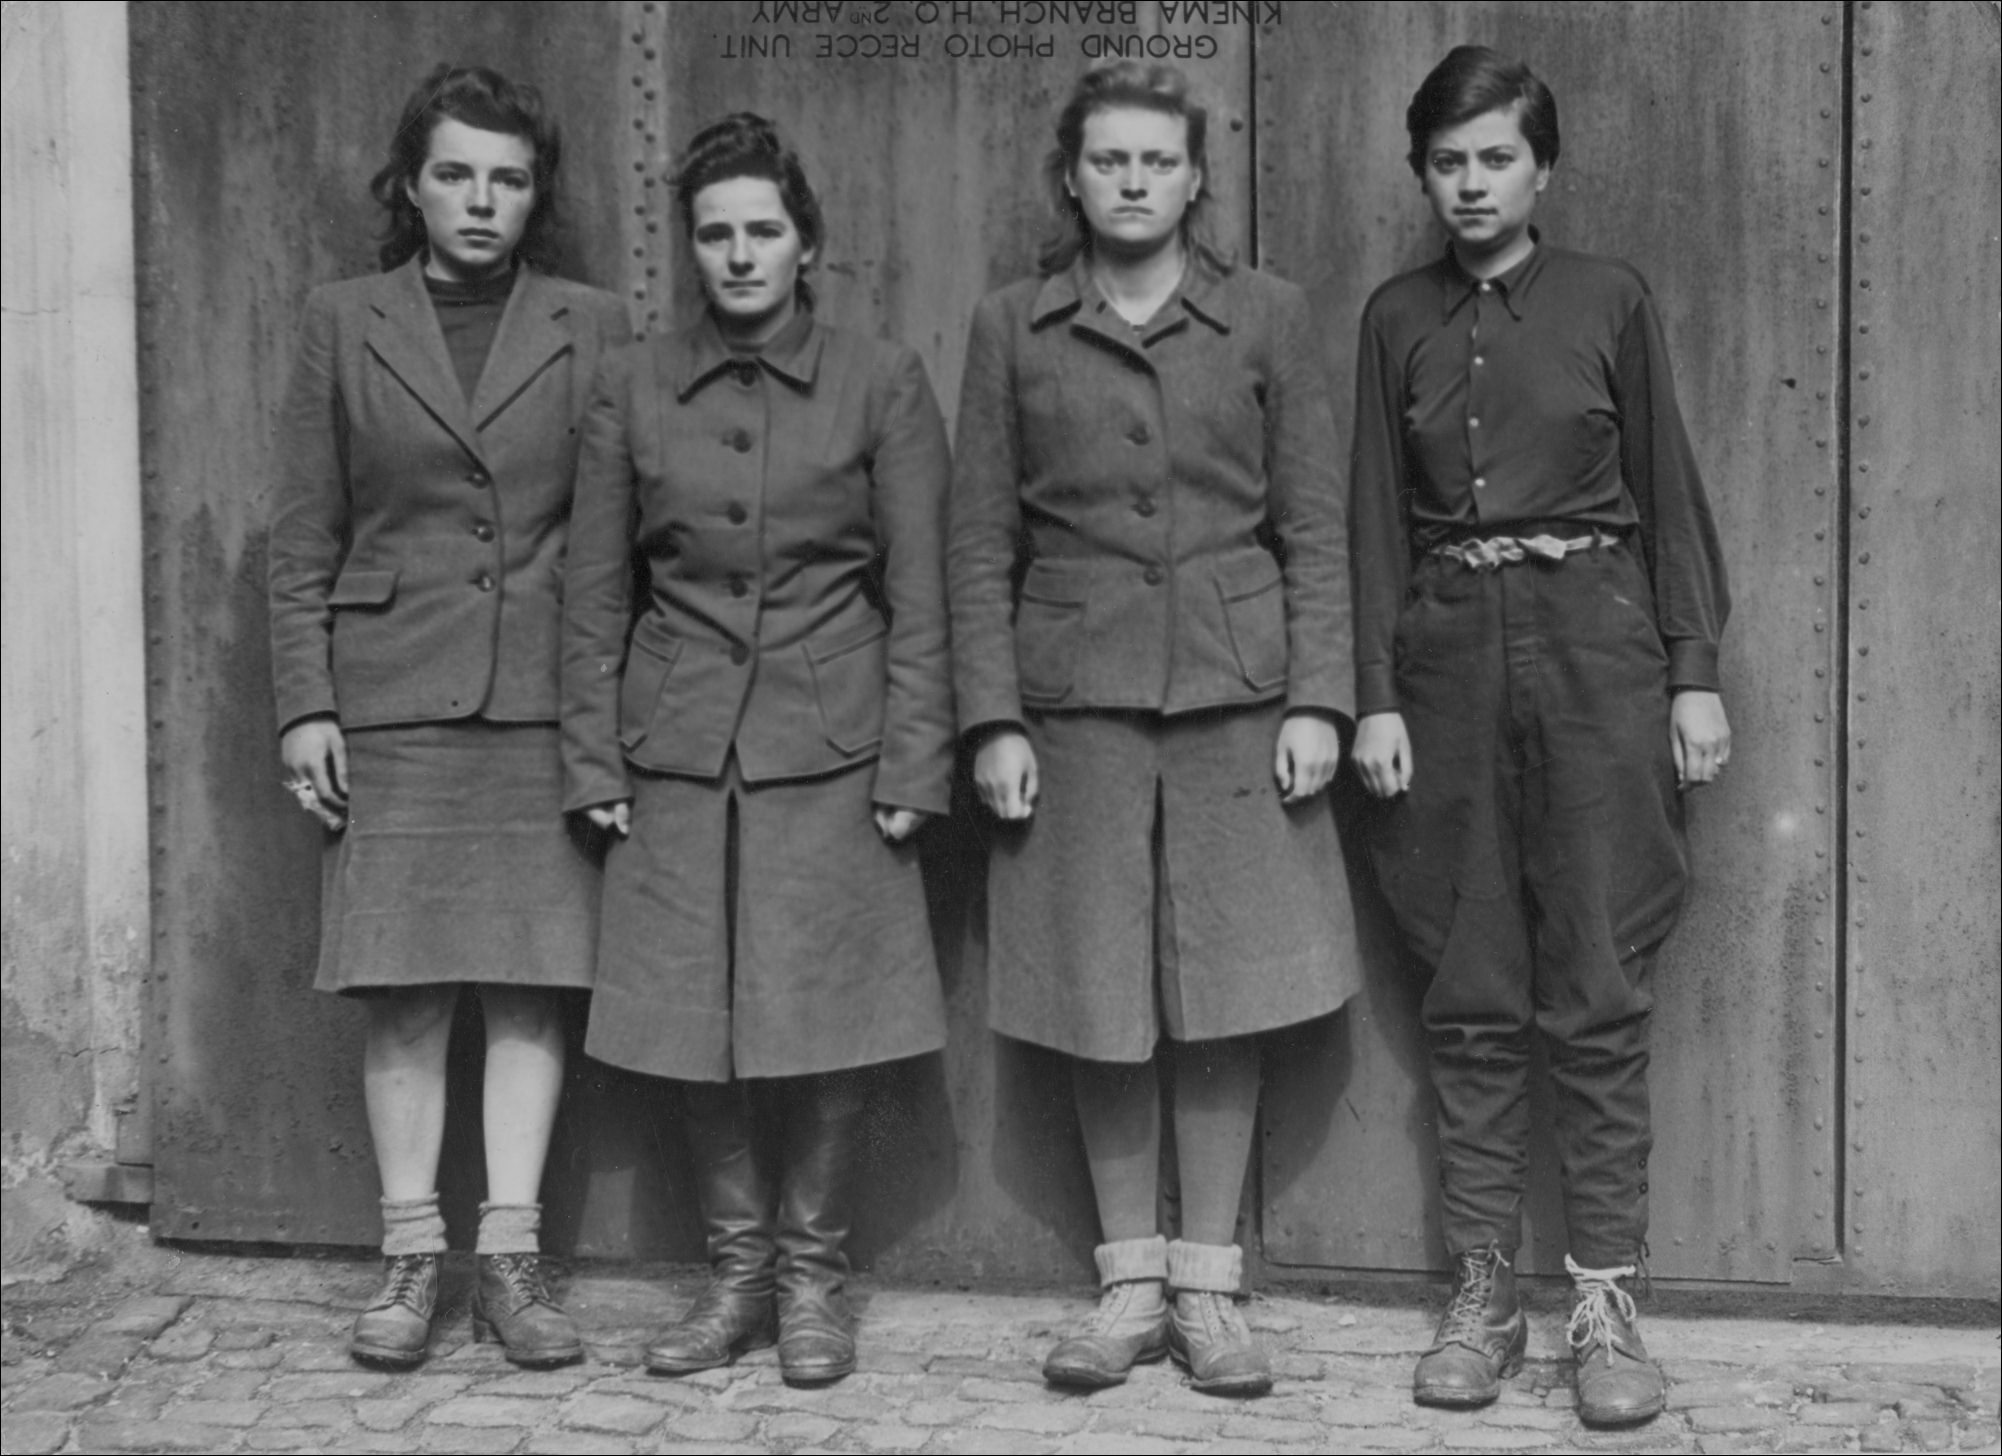 Nazi Women Guards Being Hanged http://blog.uvm.edu/mziegle1/the-ordinary-female-guard/